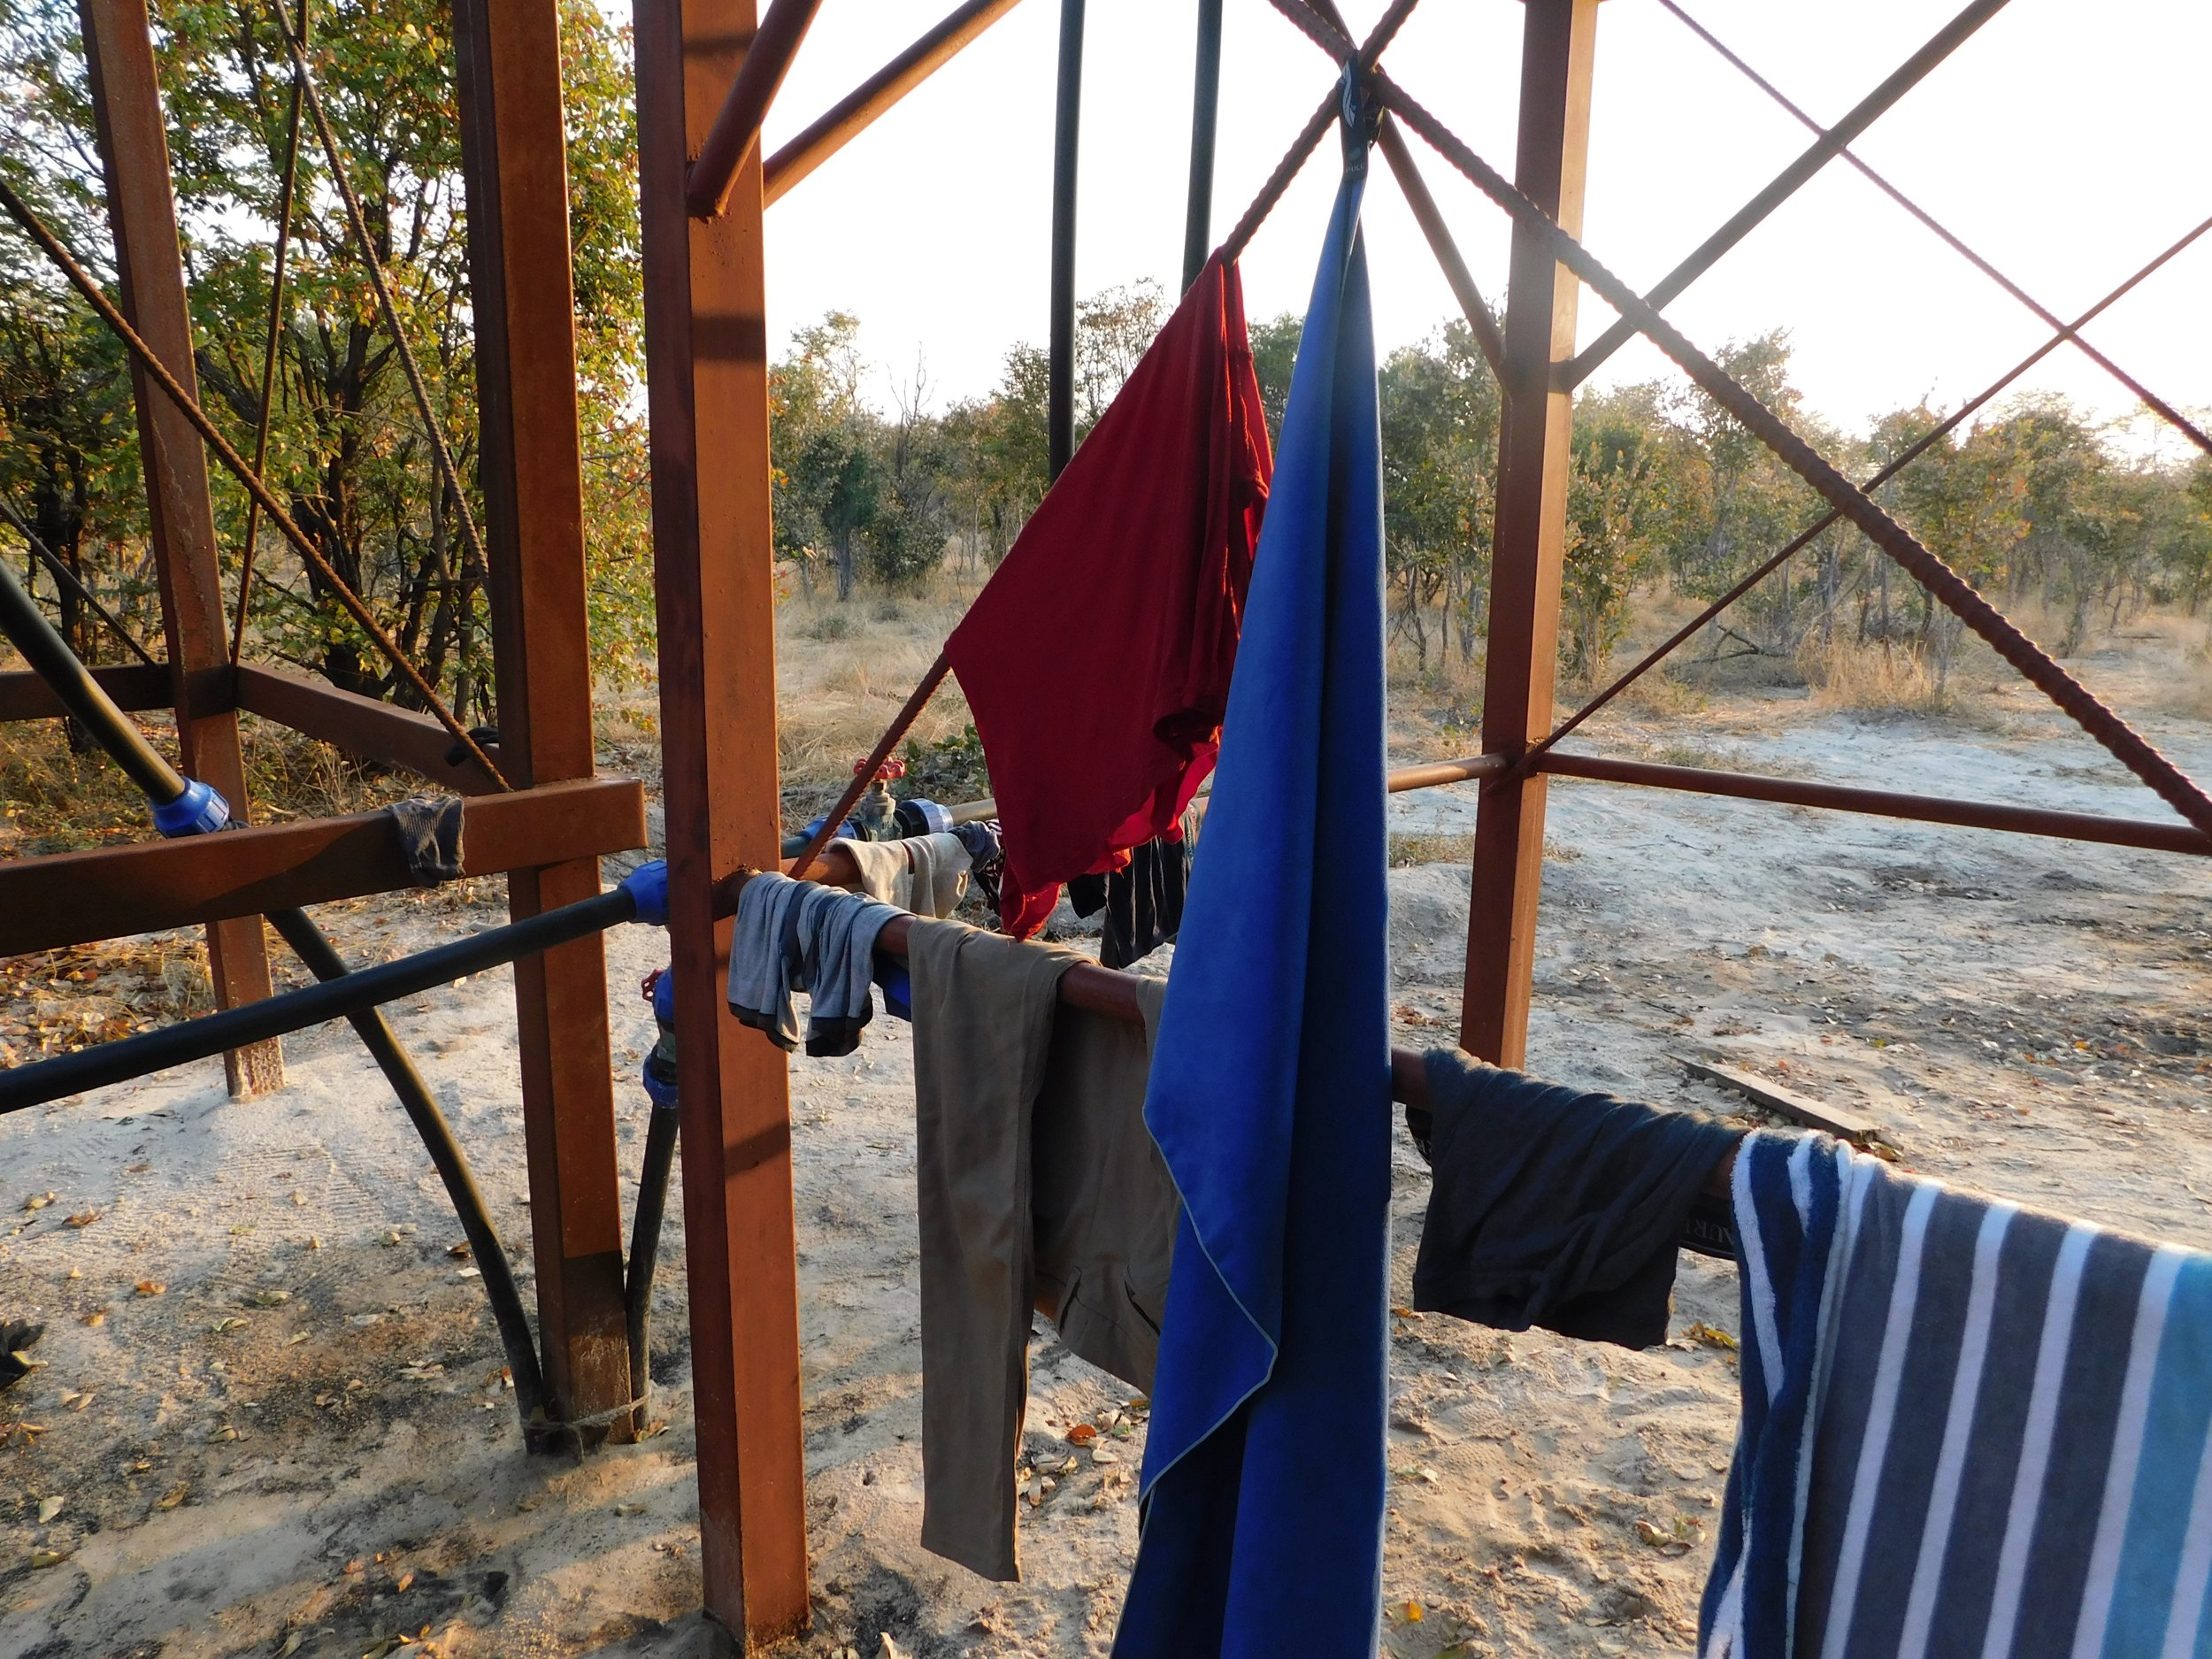 Our laundry trying to dry before the sun went down.